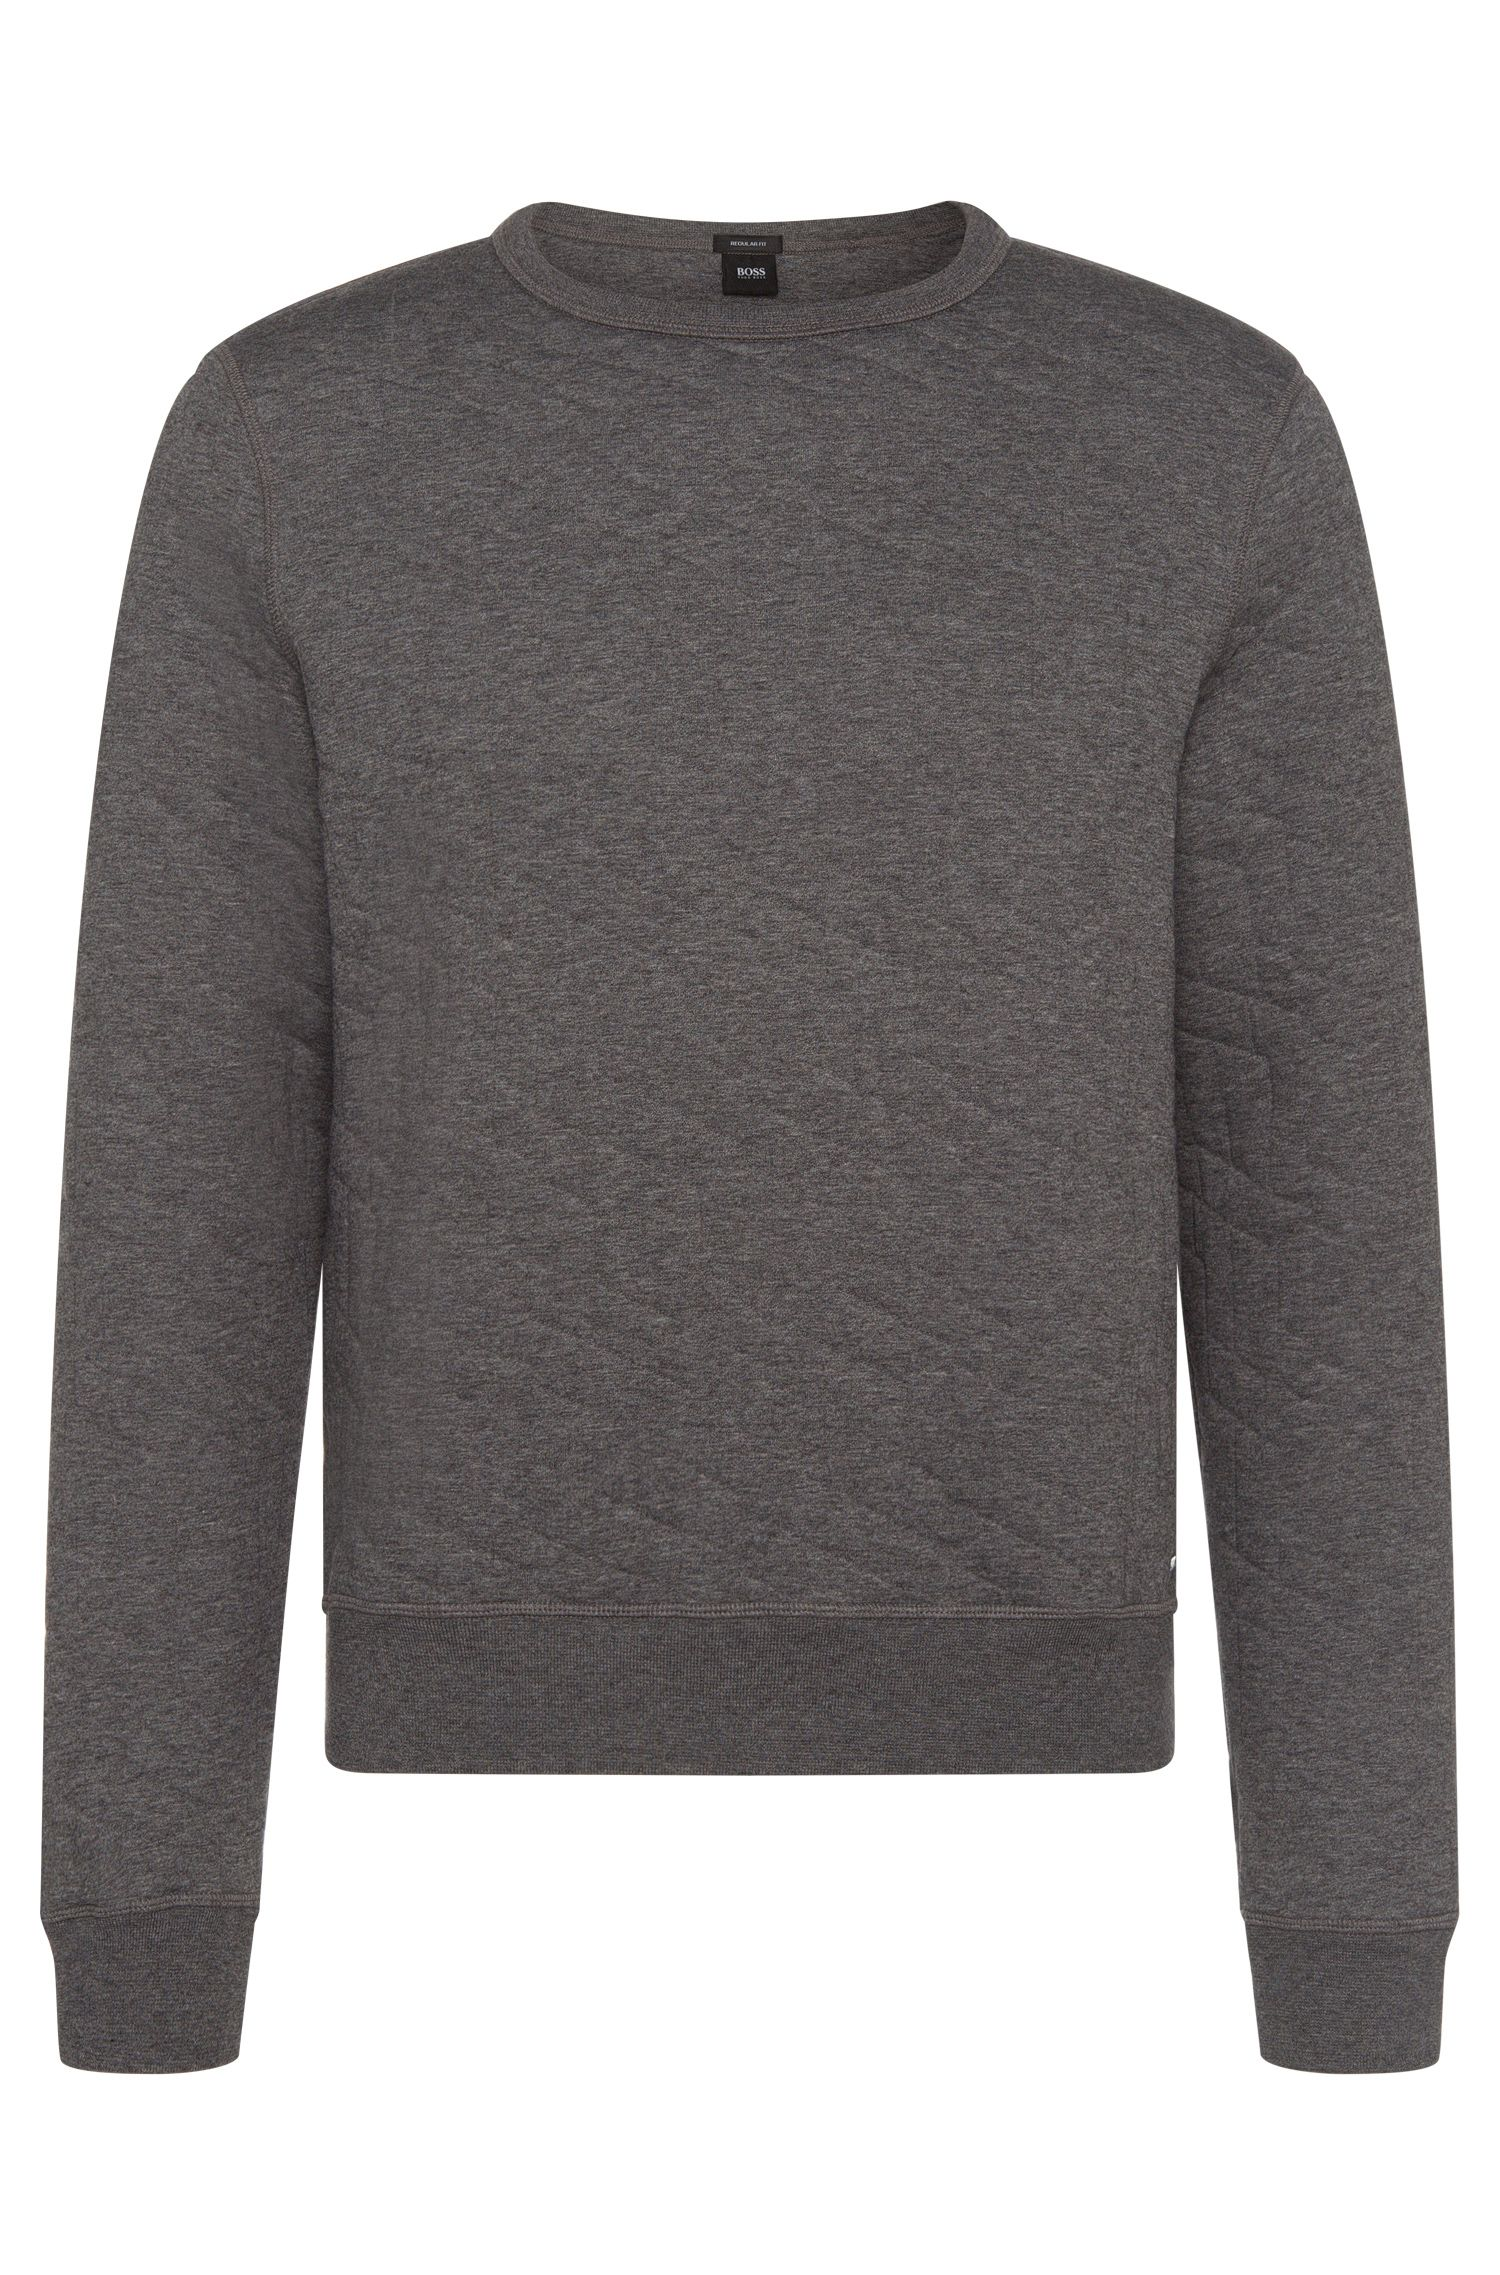 Meliertes Regular-Fit Sweatshirt aus Baumwoll-Mix: 'Stadler 03'